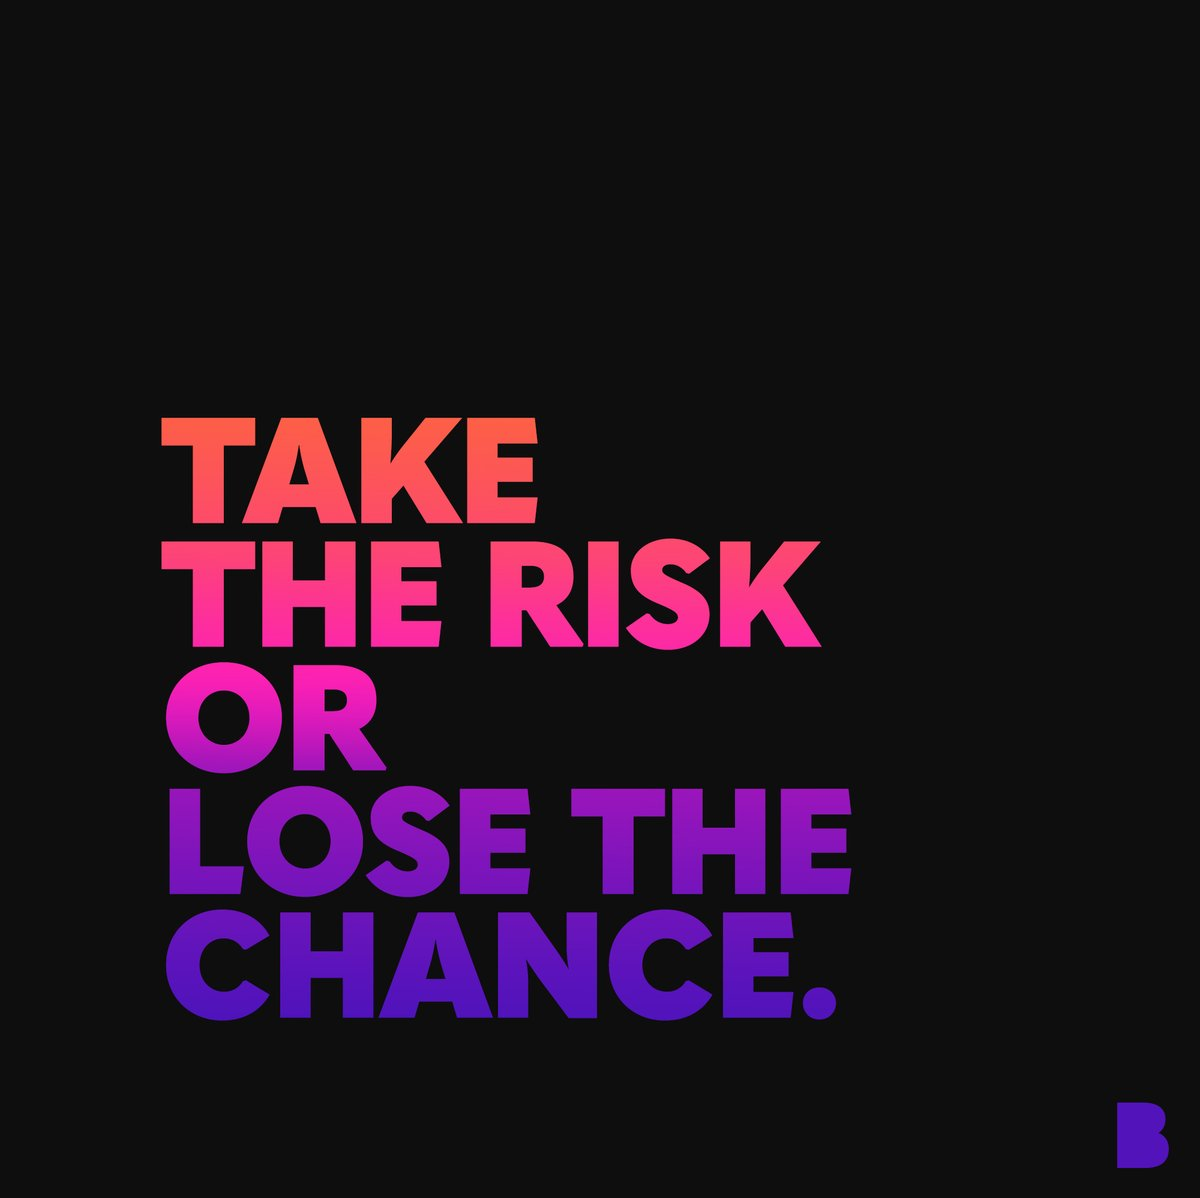 Don't miss your opportunity.  #BoldLikeUs #BLUProducts #BLUSmartphones #BeBold #Unlocked #BLUForYou #MadeInMiami #FromMiamiWithLove #MakeBOLDMoves #TakeTheRisk #TakeChances #DontMissYourOpportunity #TuesdayThoughts #FoodForThought